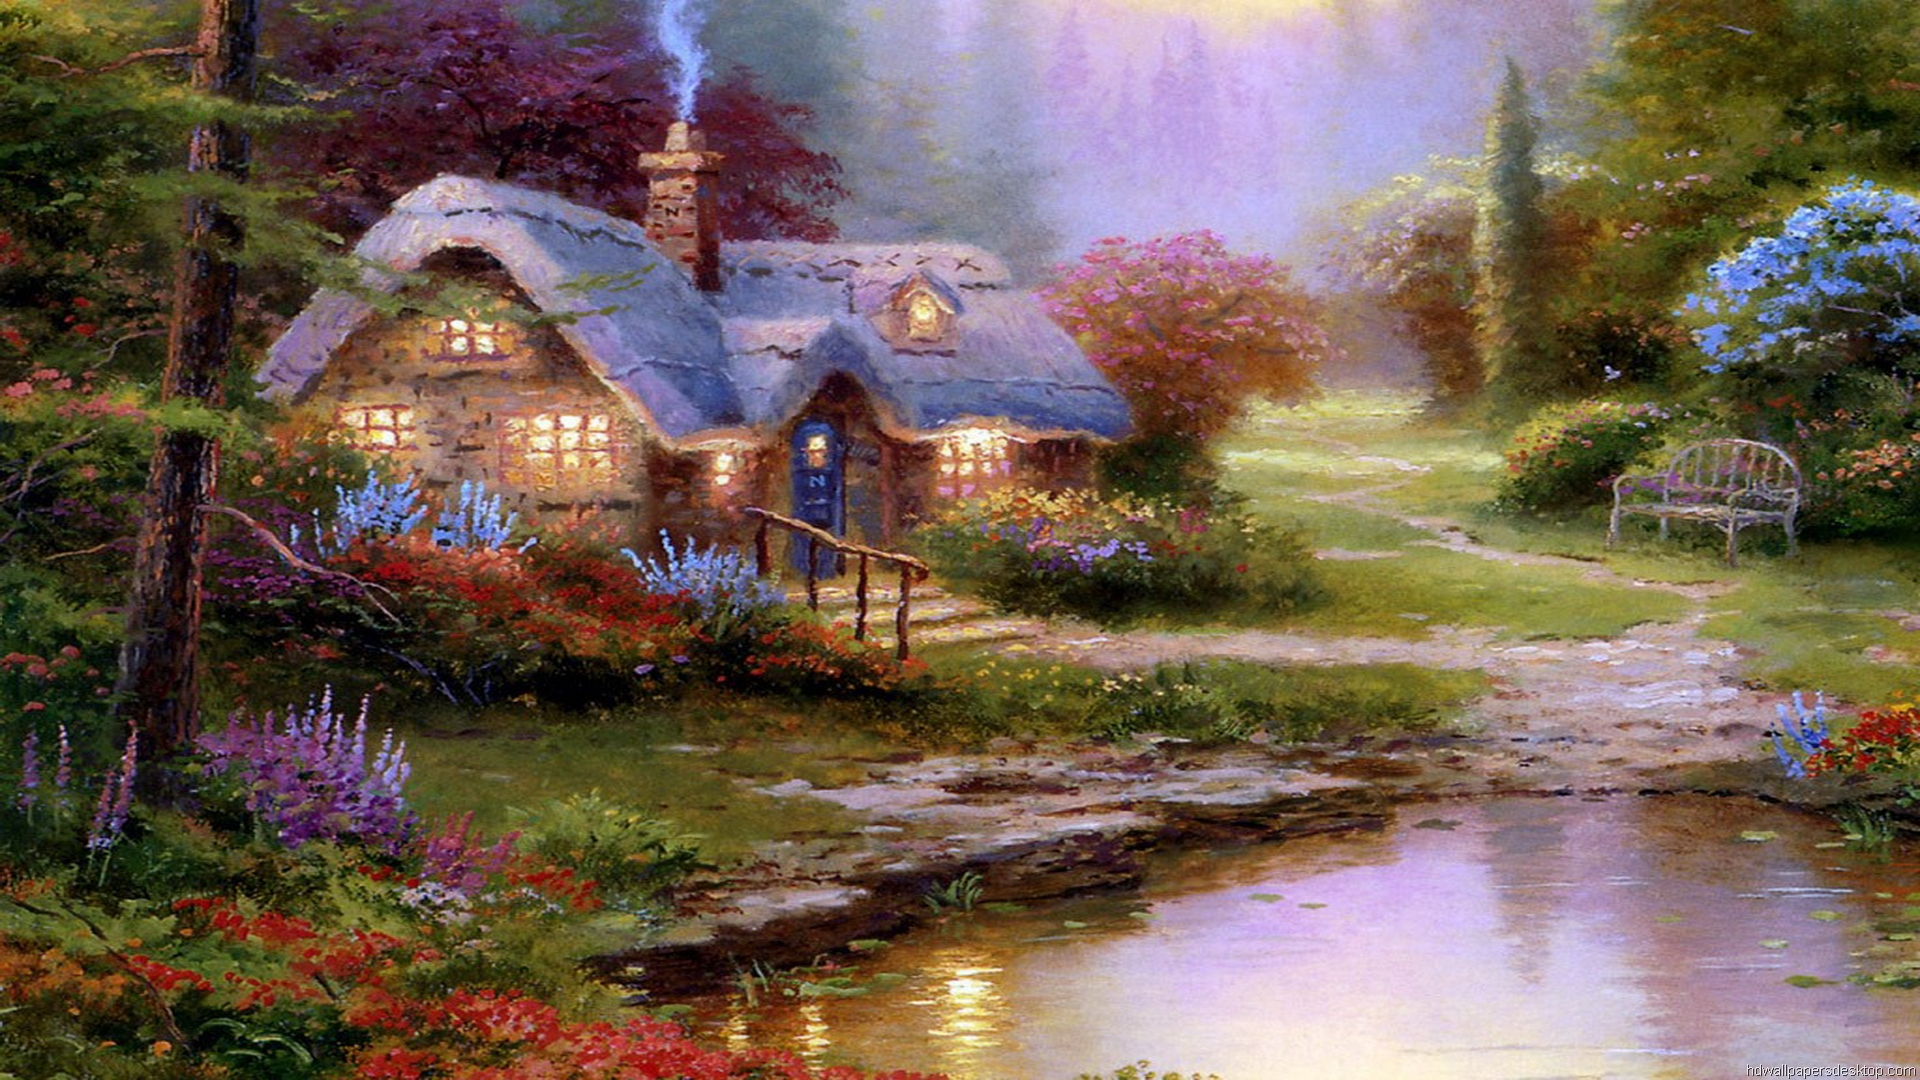 Thomas Kinkade Wallpaper Paintings Art HD Desktop 1920x1080